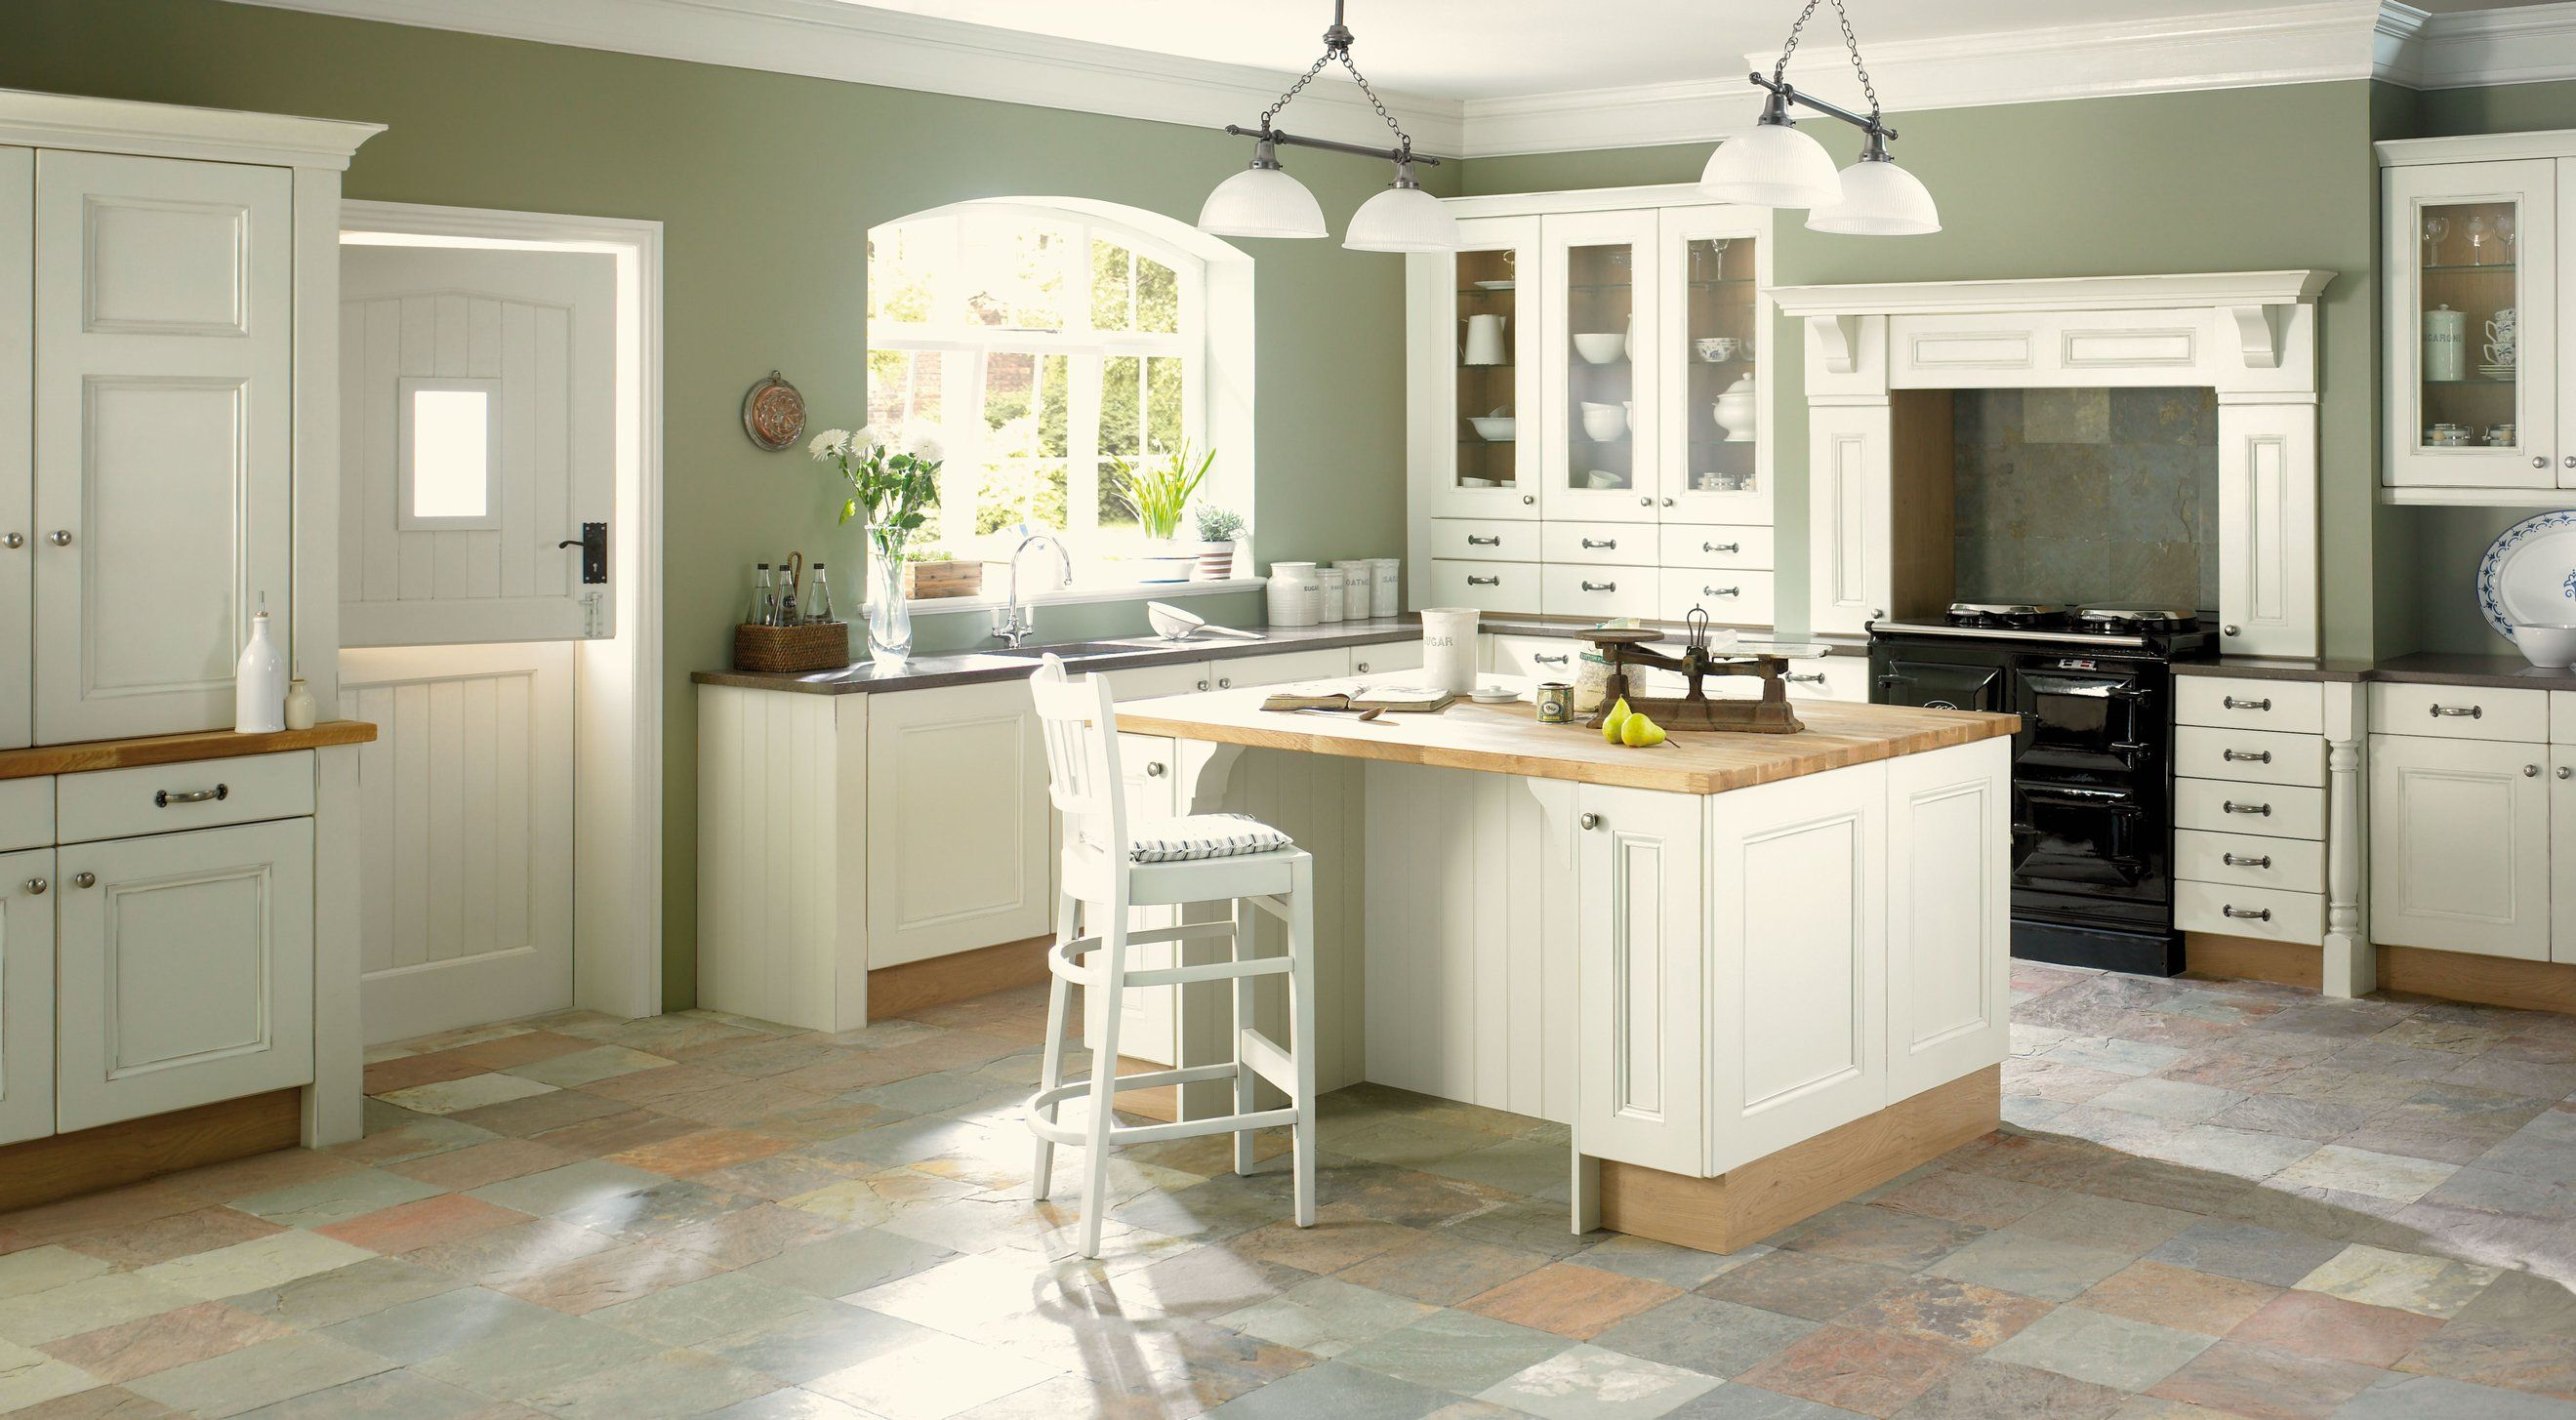 kitchen-colors-with-white-cabinets-and-black-countertops-cottage ...